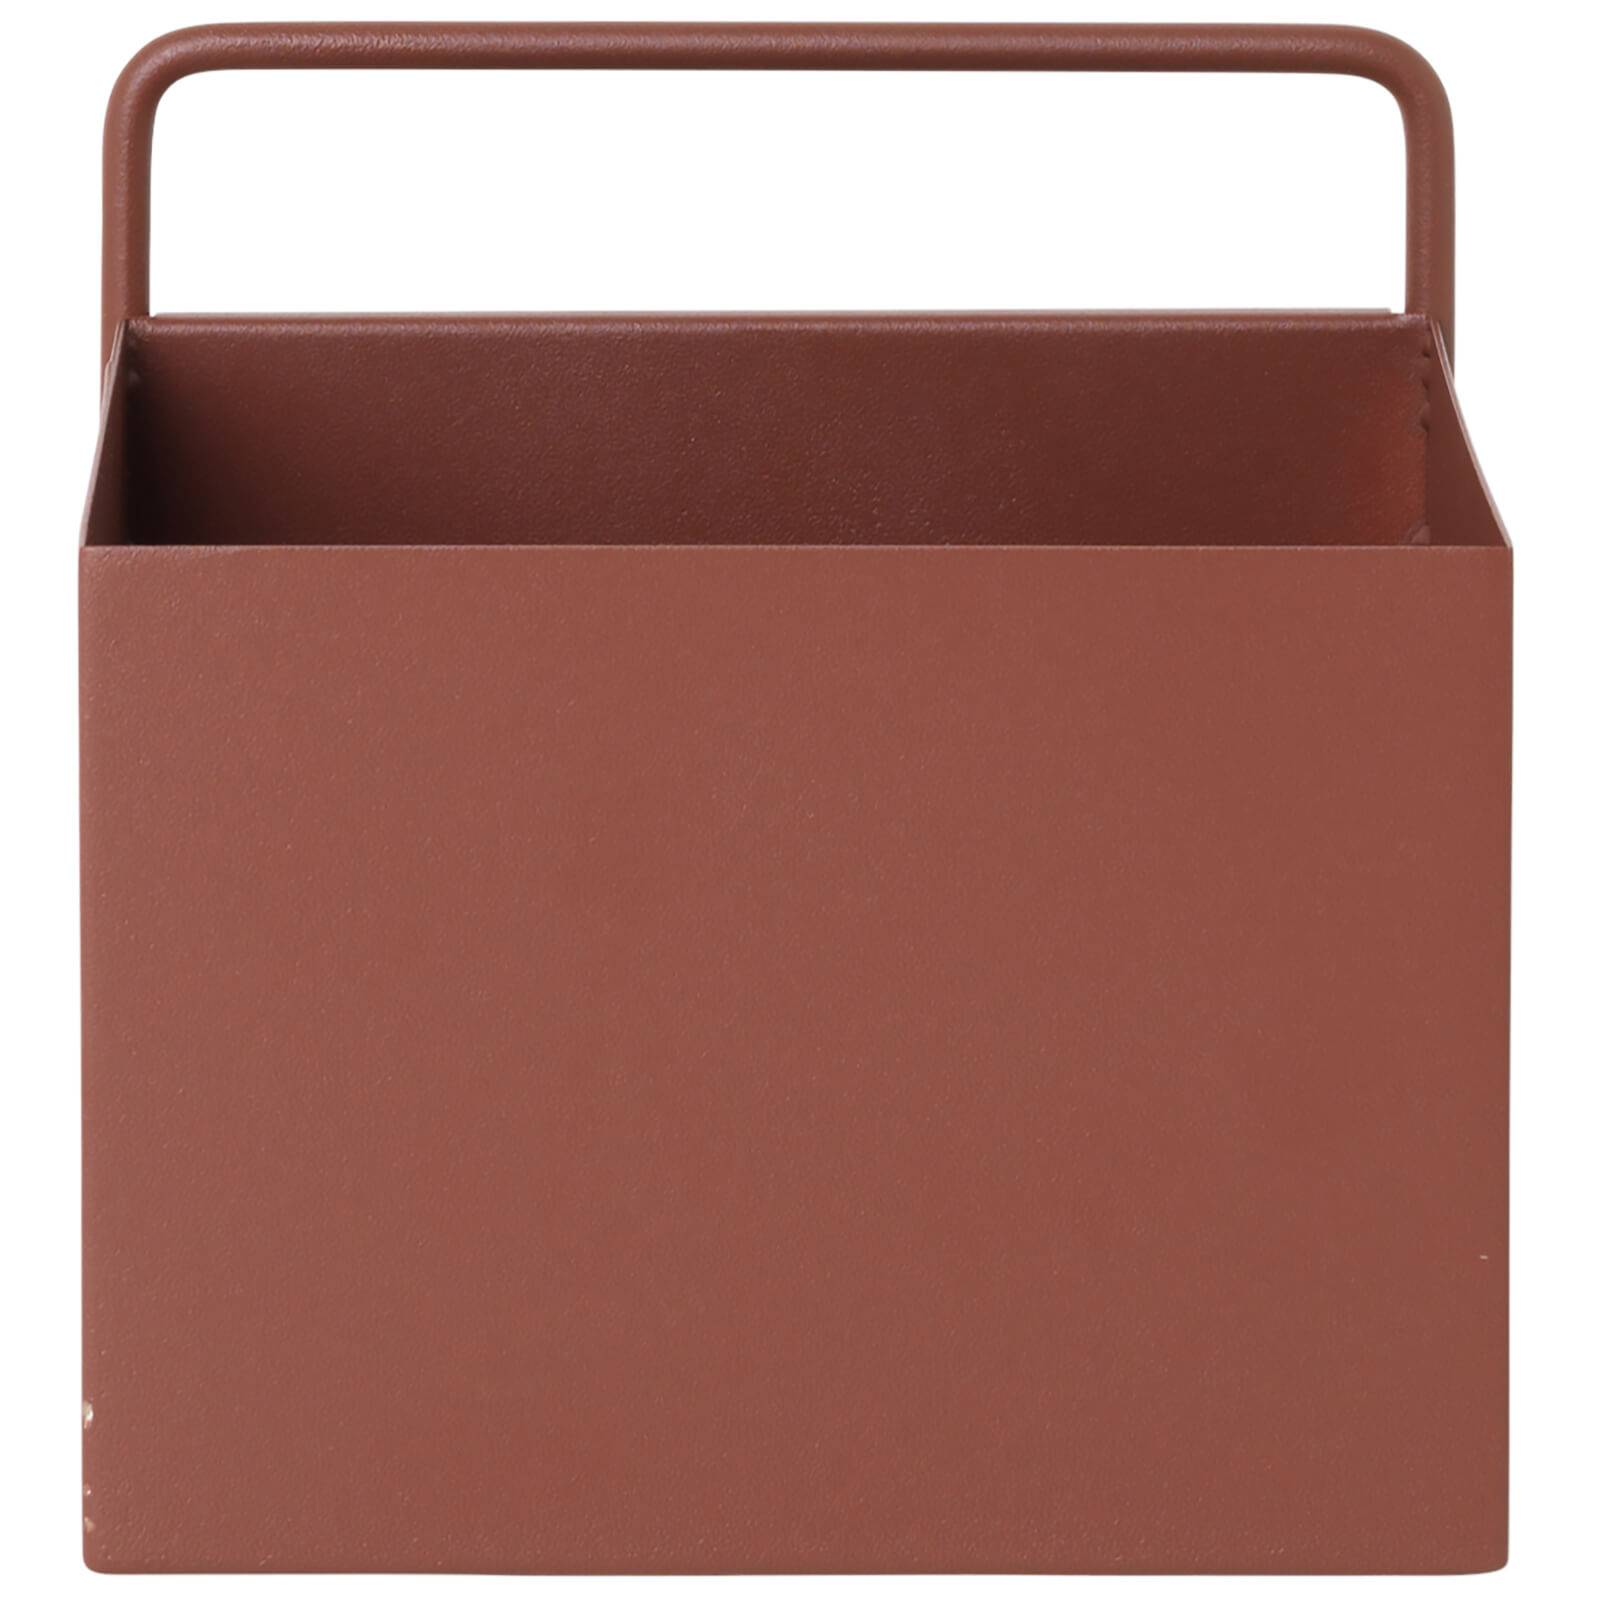 Ferm Living Wall Box - Square - Red/Brown